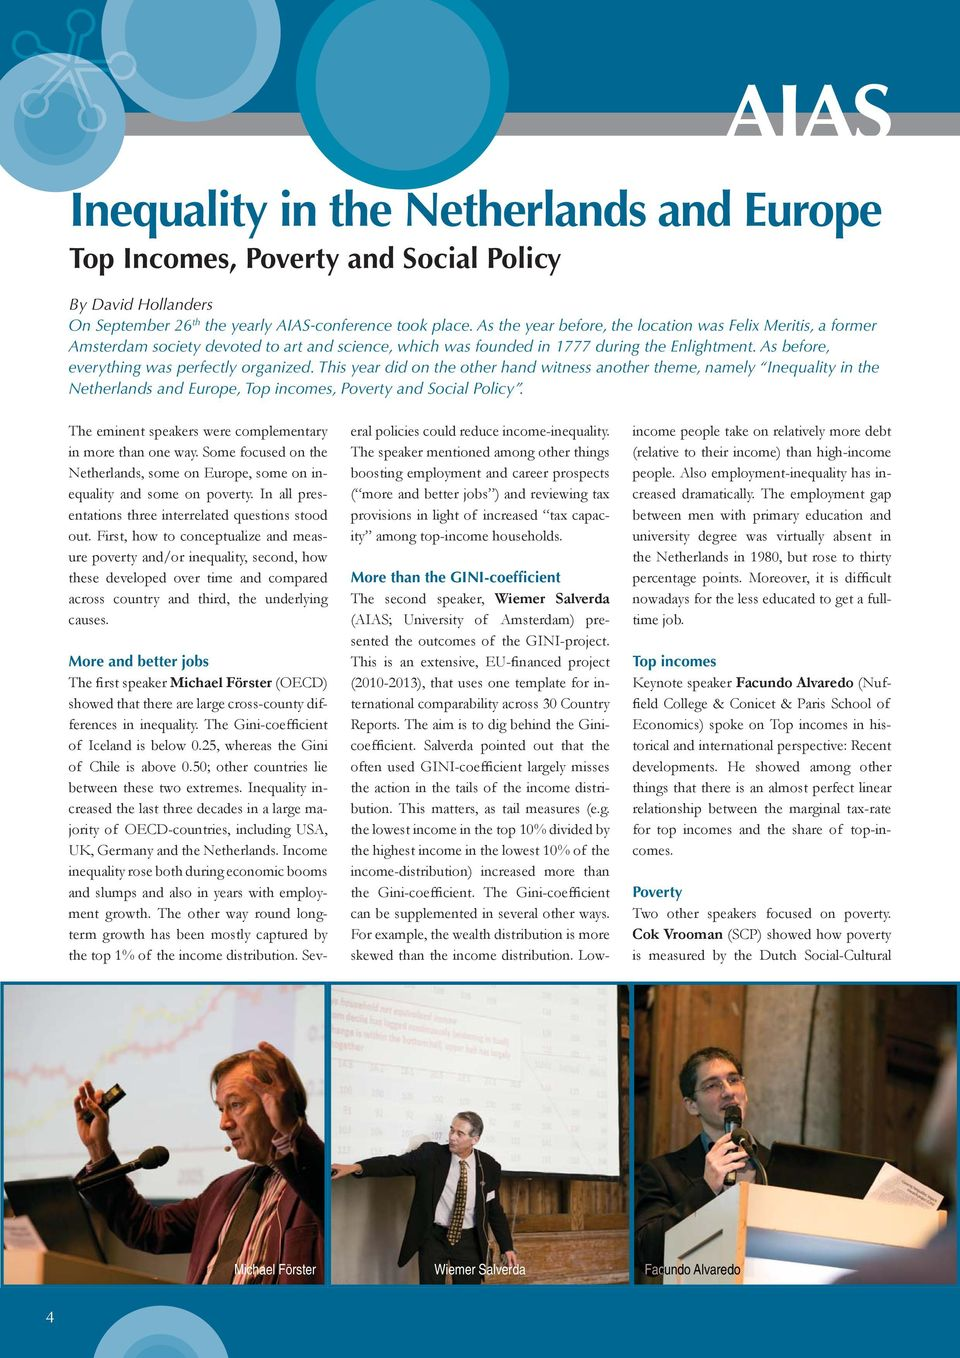 As before, everything was perfectly organized. This year did on the other hand witness another theme, namely Inequality in the Netherlands and Europe, Top incomes, Poverty and Social Policy.